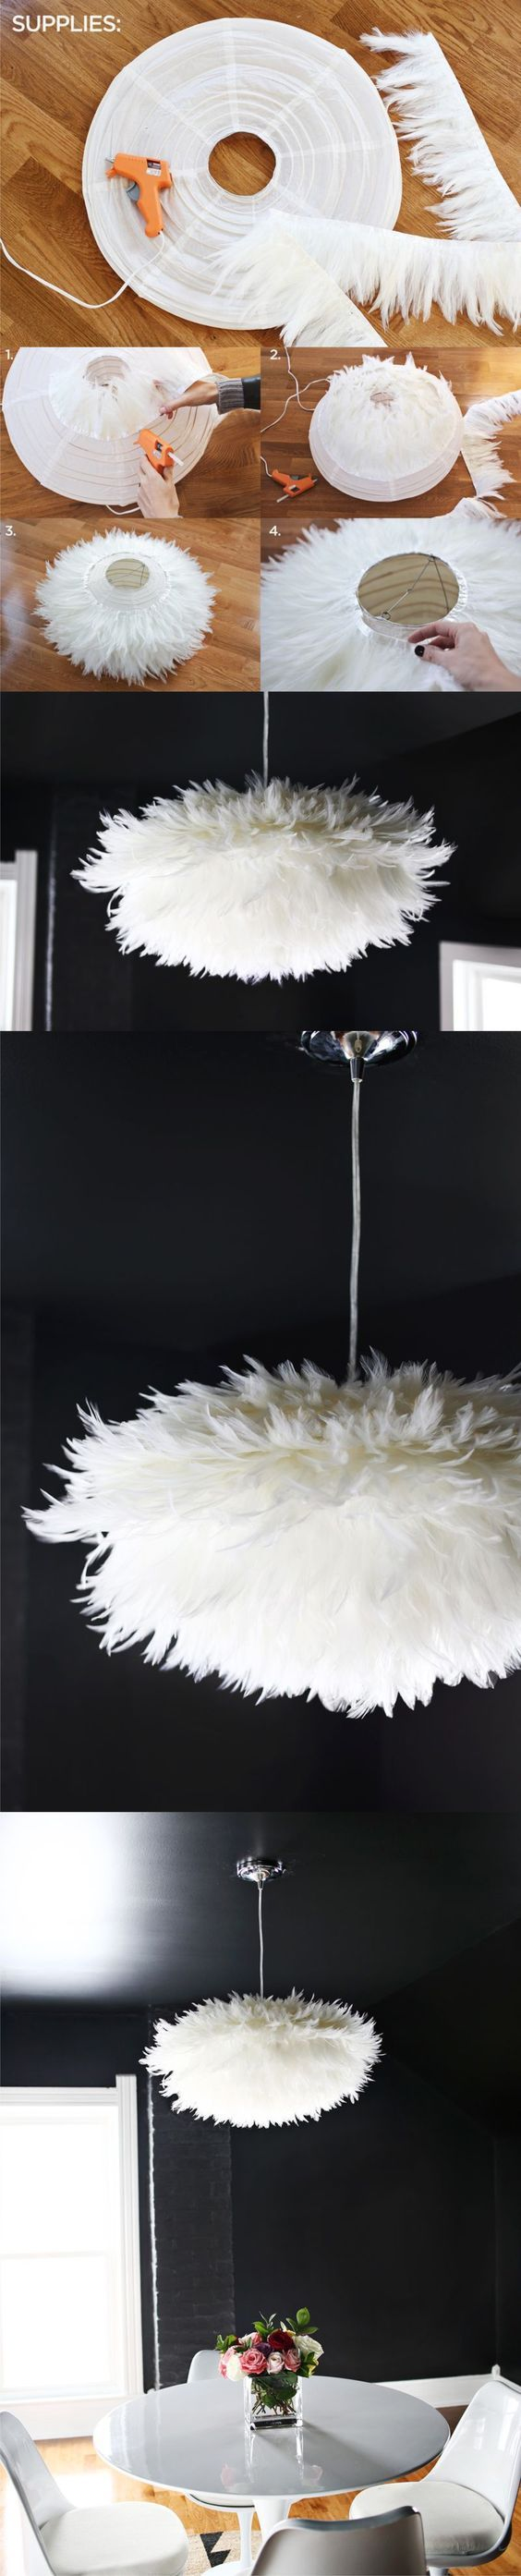 DIY Lamp with feathers. Great and stylish idea Loads of suitable feather trims for similar feather projects at http://www.thefeatherfactory.co.uk/categories/trims/14/: